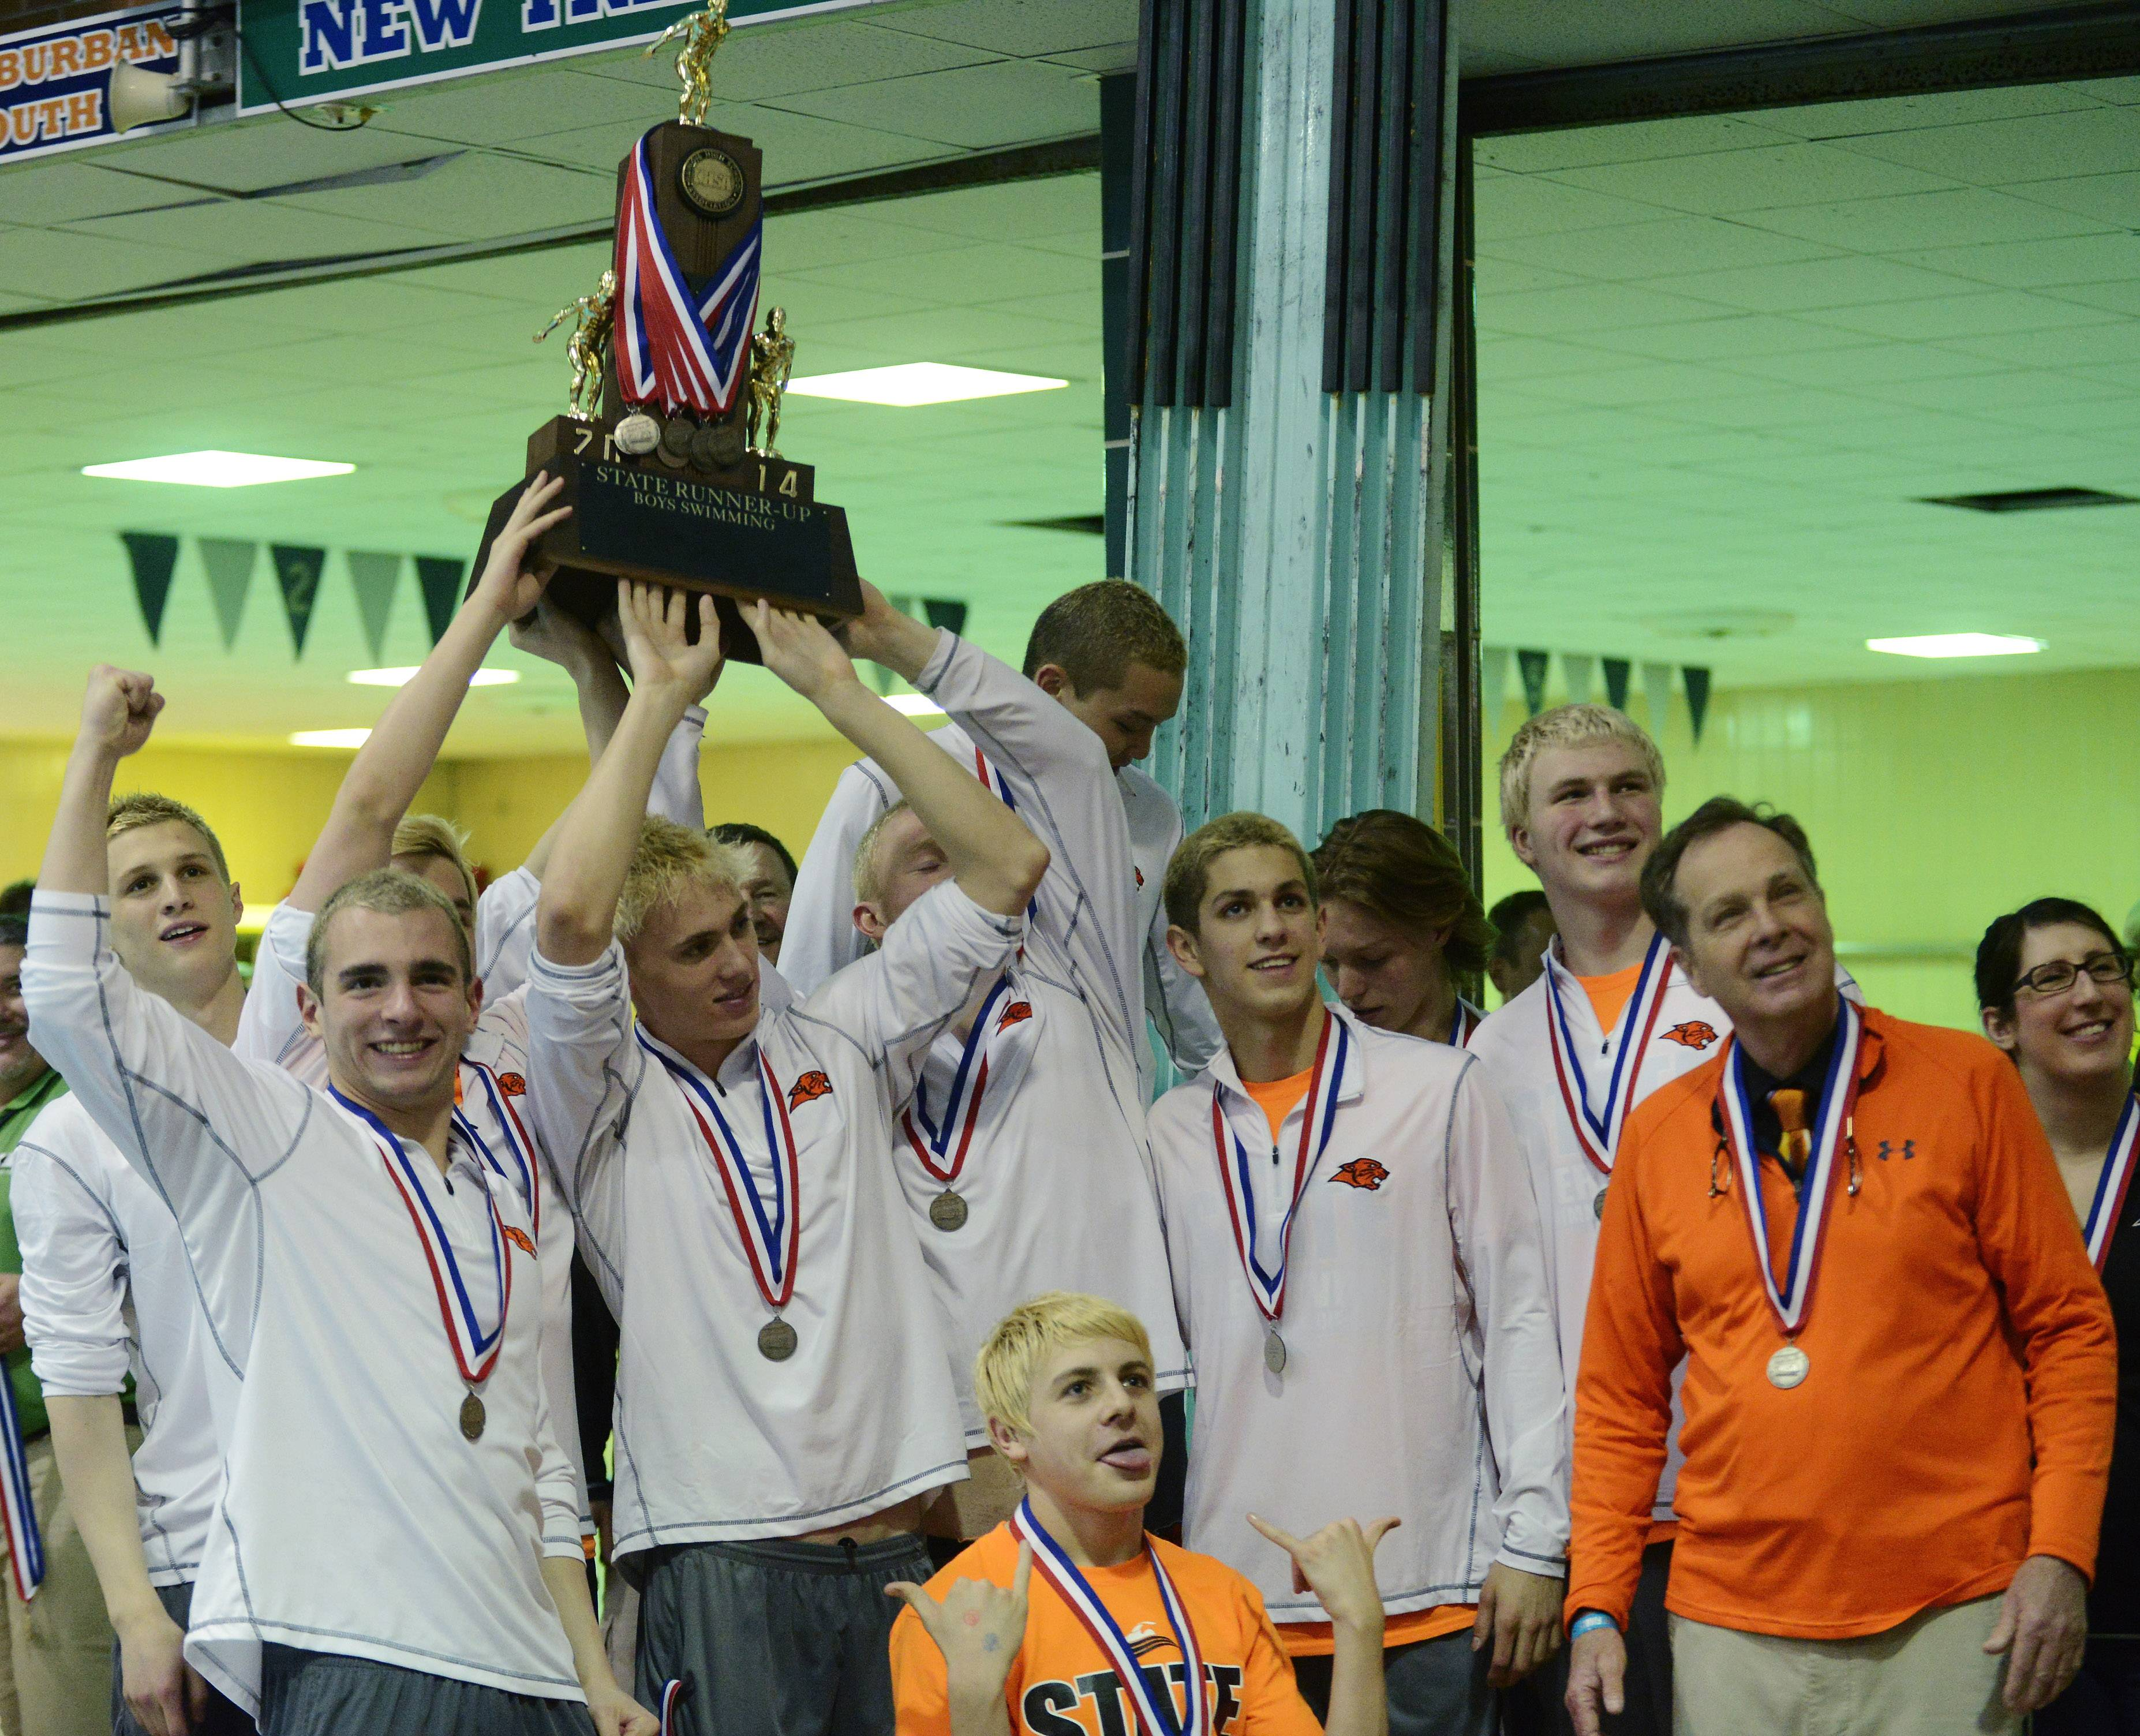 Libertyville swimmers hoist their second-place team trophy following the boys swimming state meet finals at Evanston High School on Saturday.